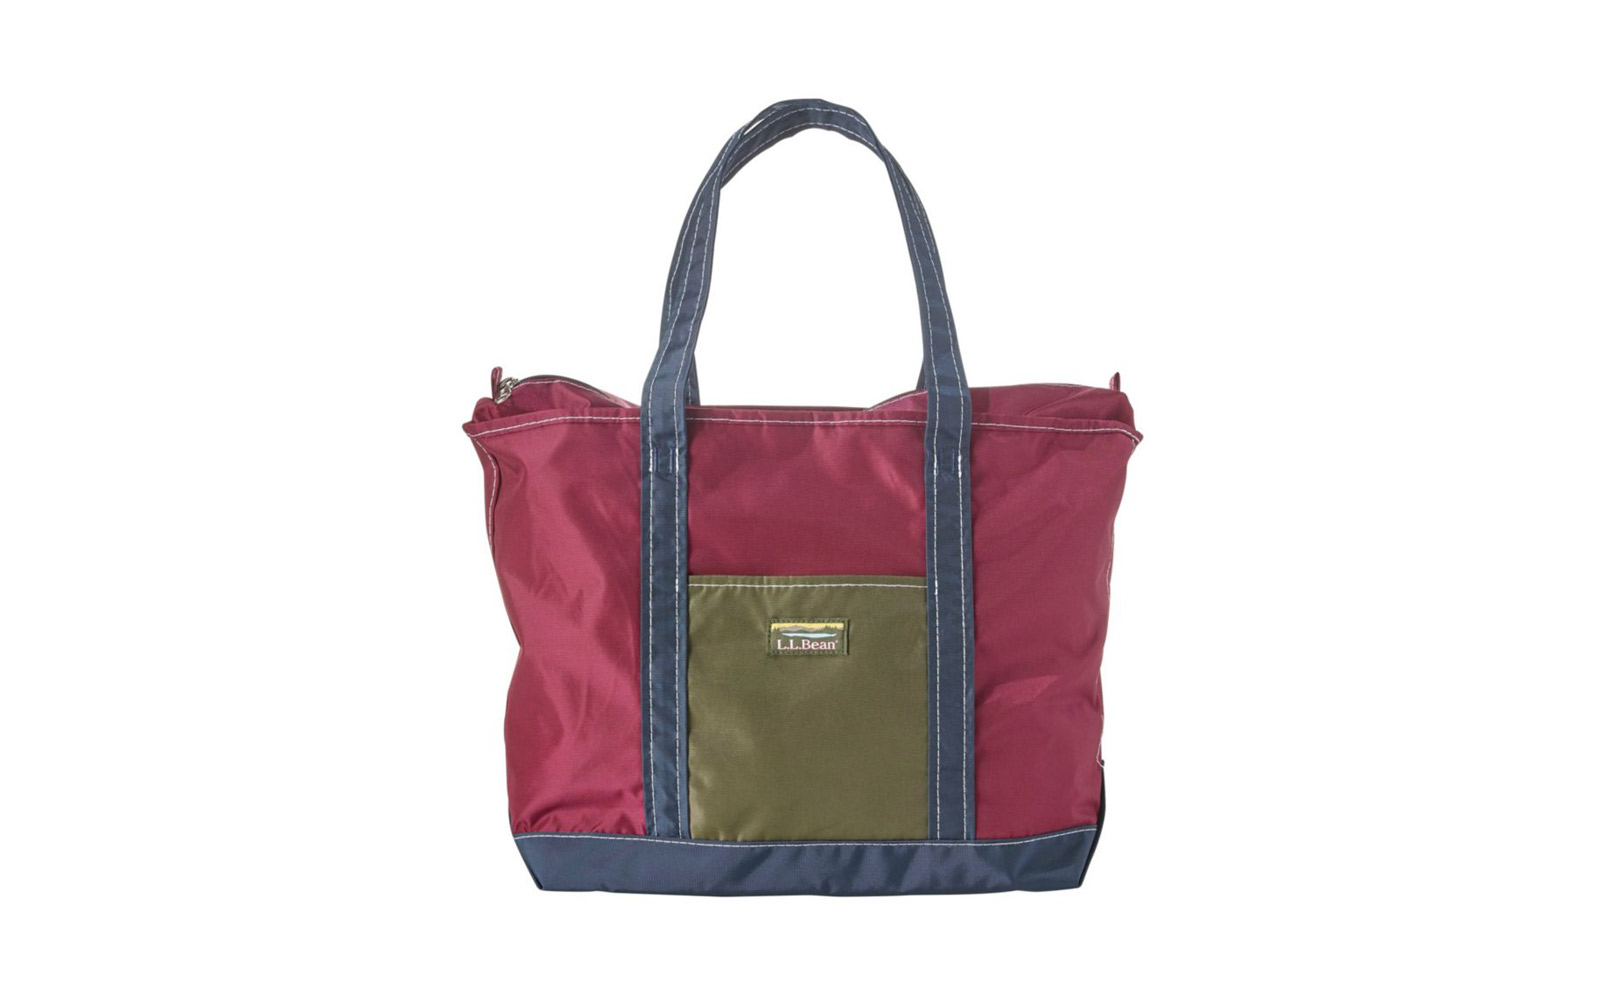 27fd2e291 The Best Travel Tote Bags | Travel + Leisure